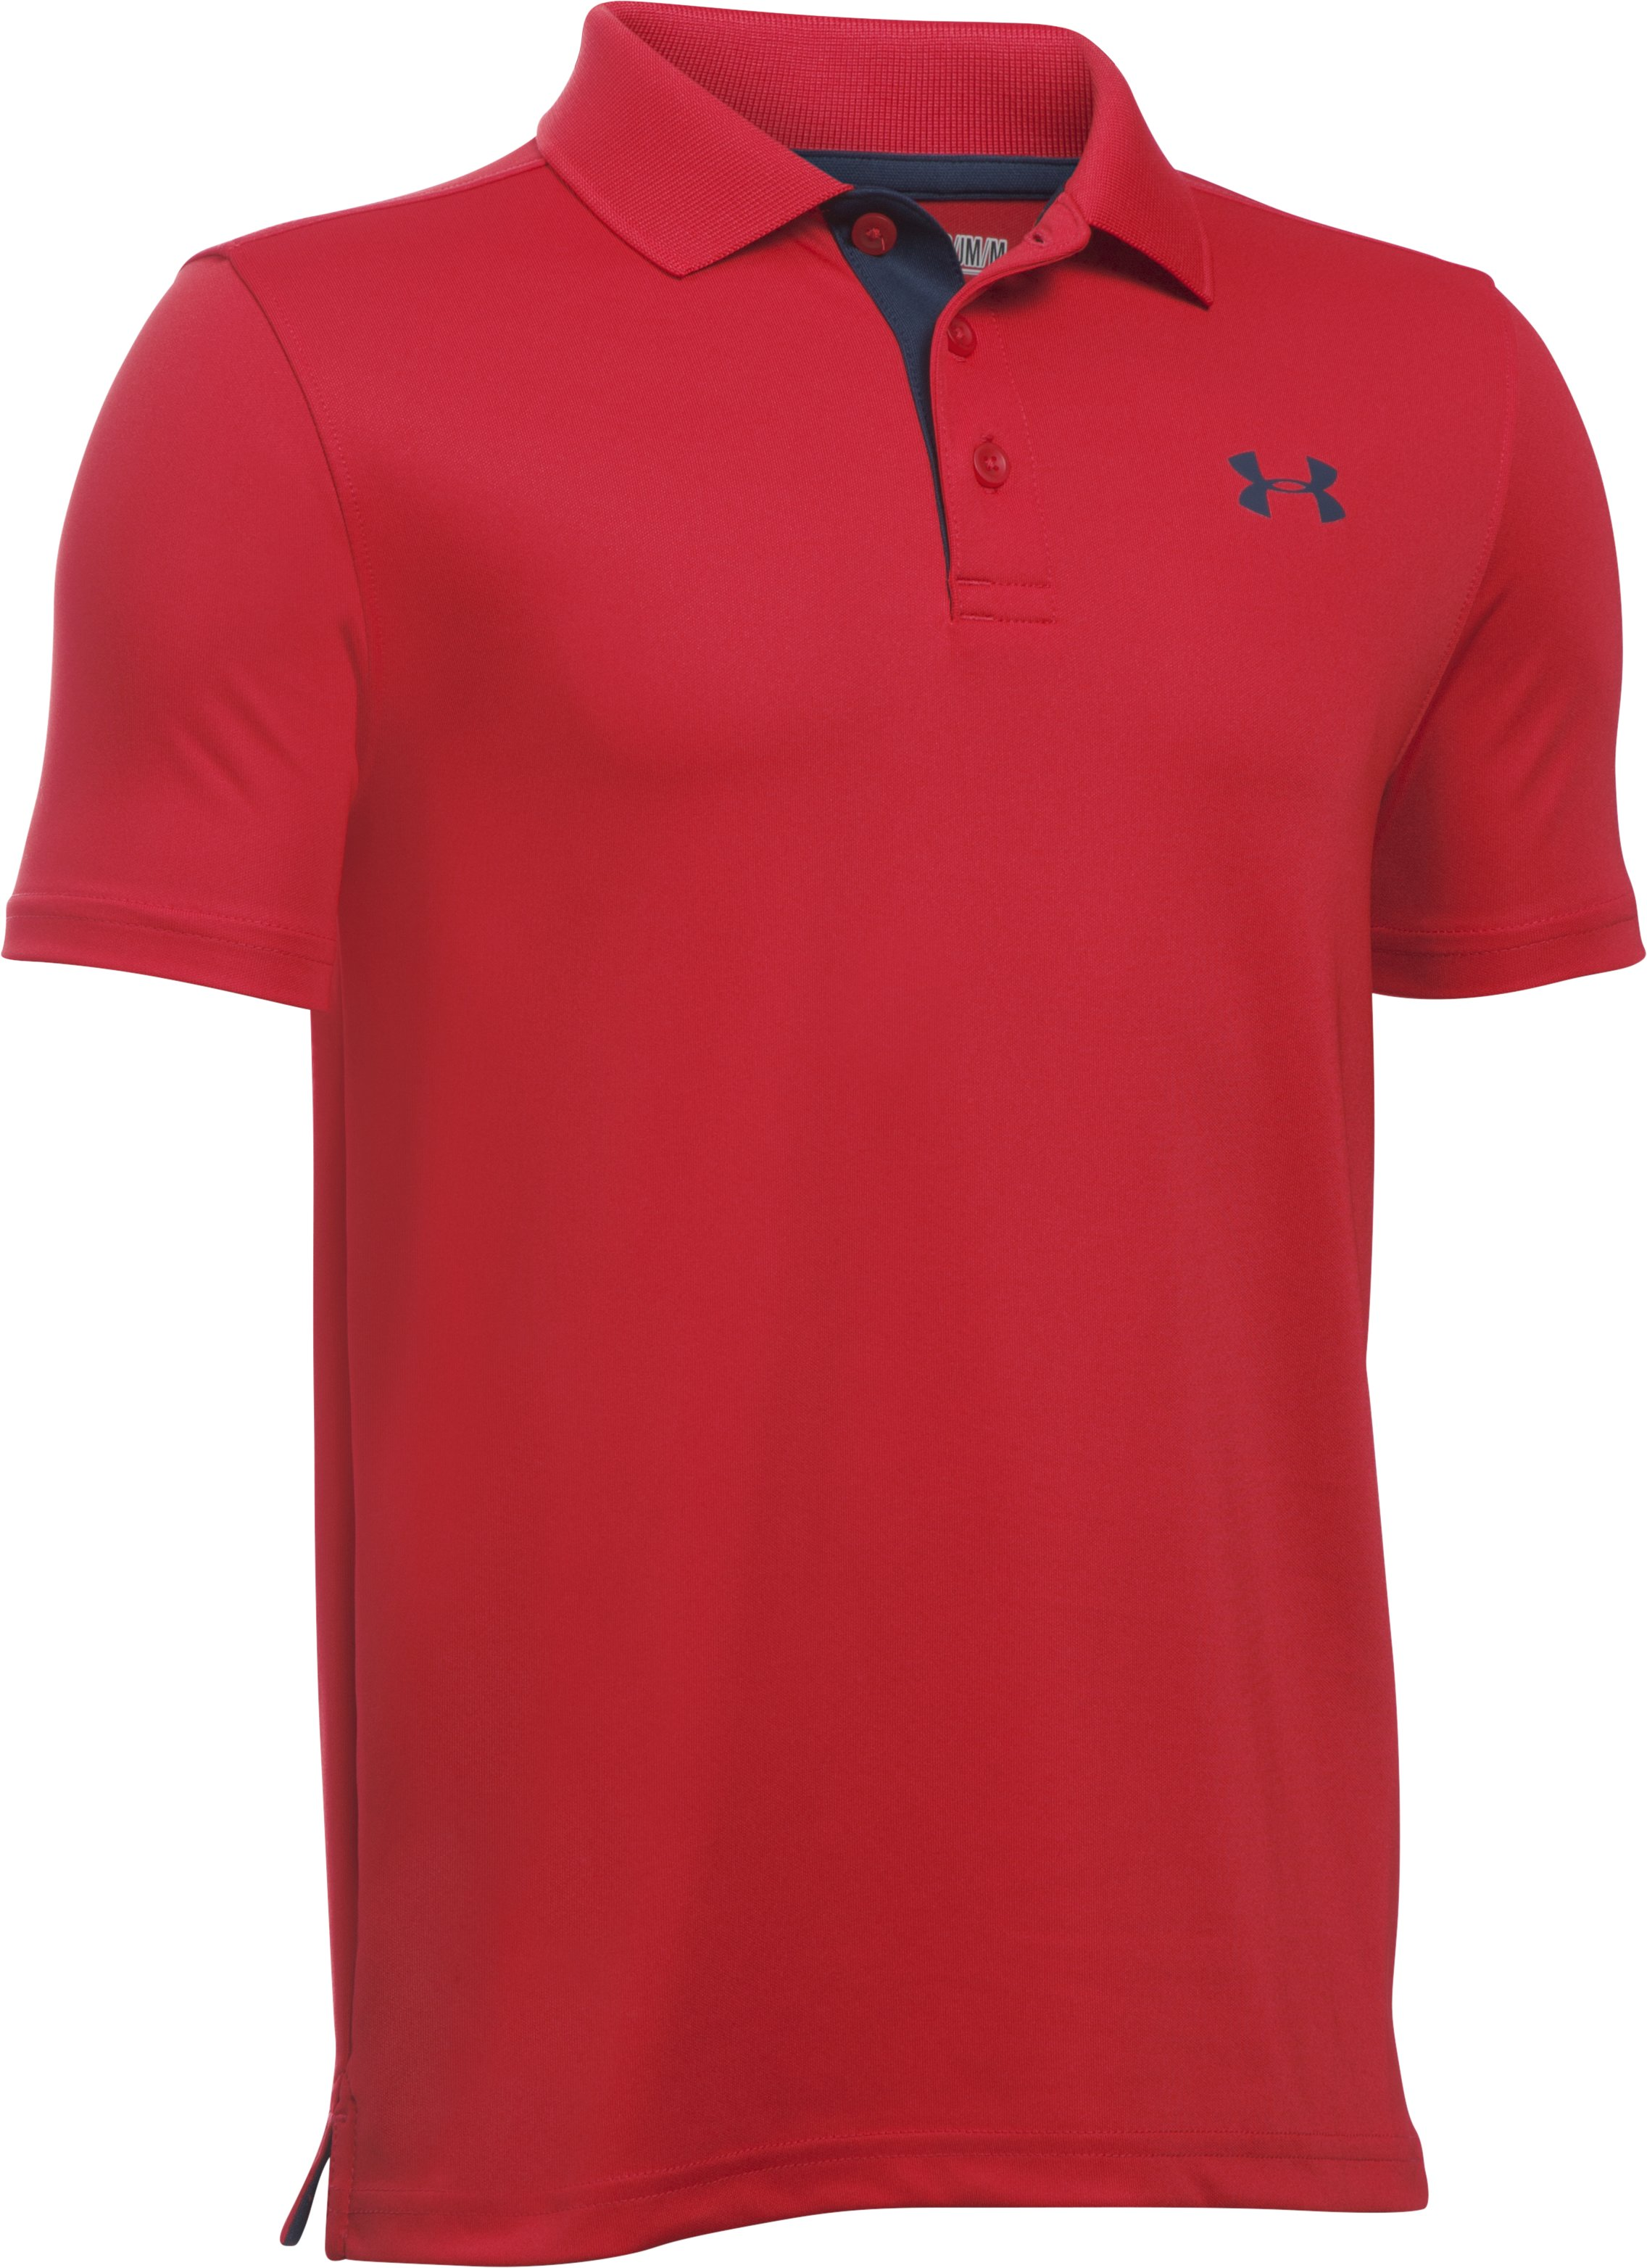 Boys' UA Performance Polo, Red